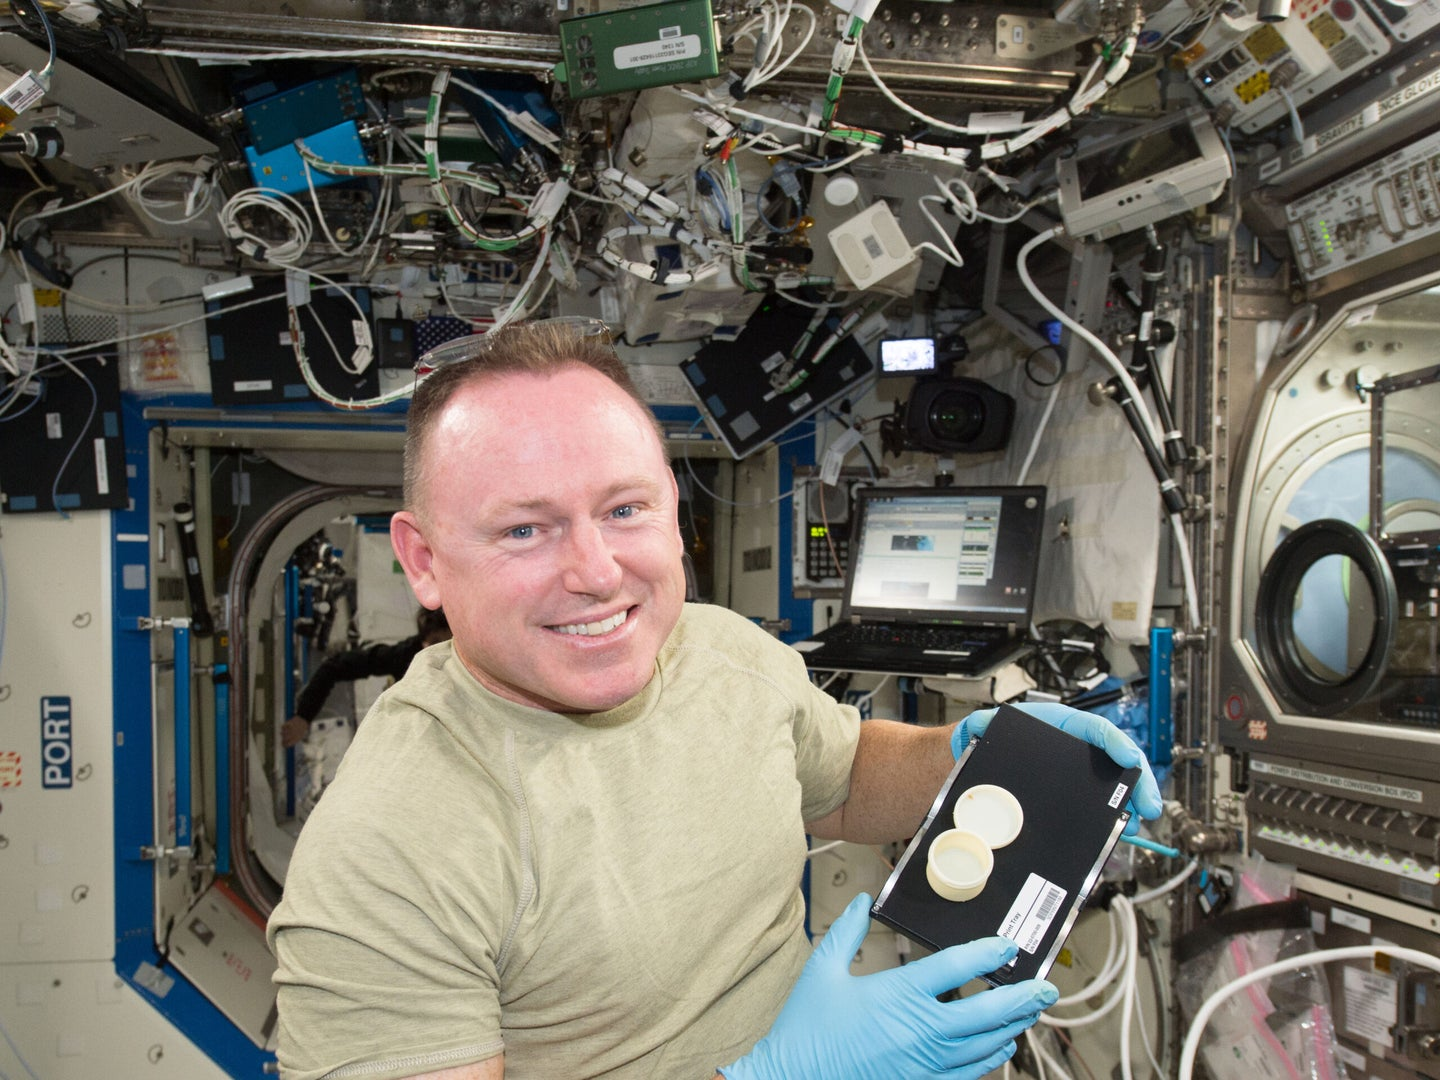 Astronaut Butch Wilmore holds a container that was 3D printed on the International Space Station.